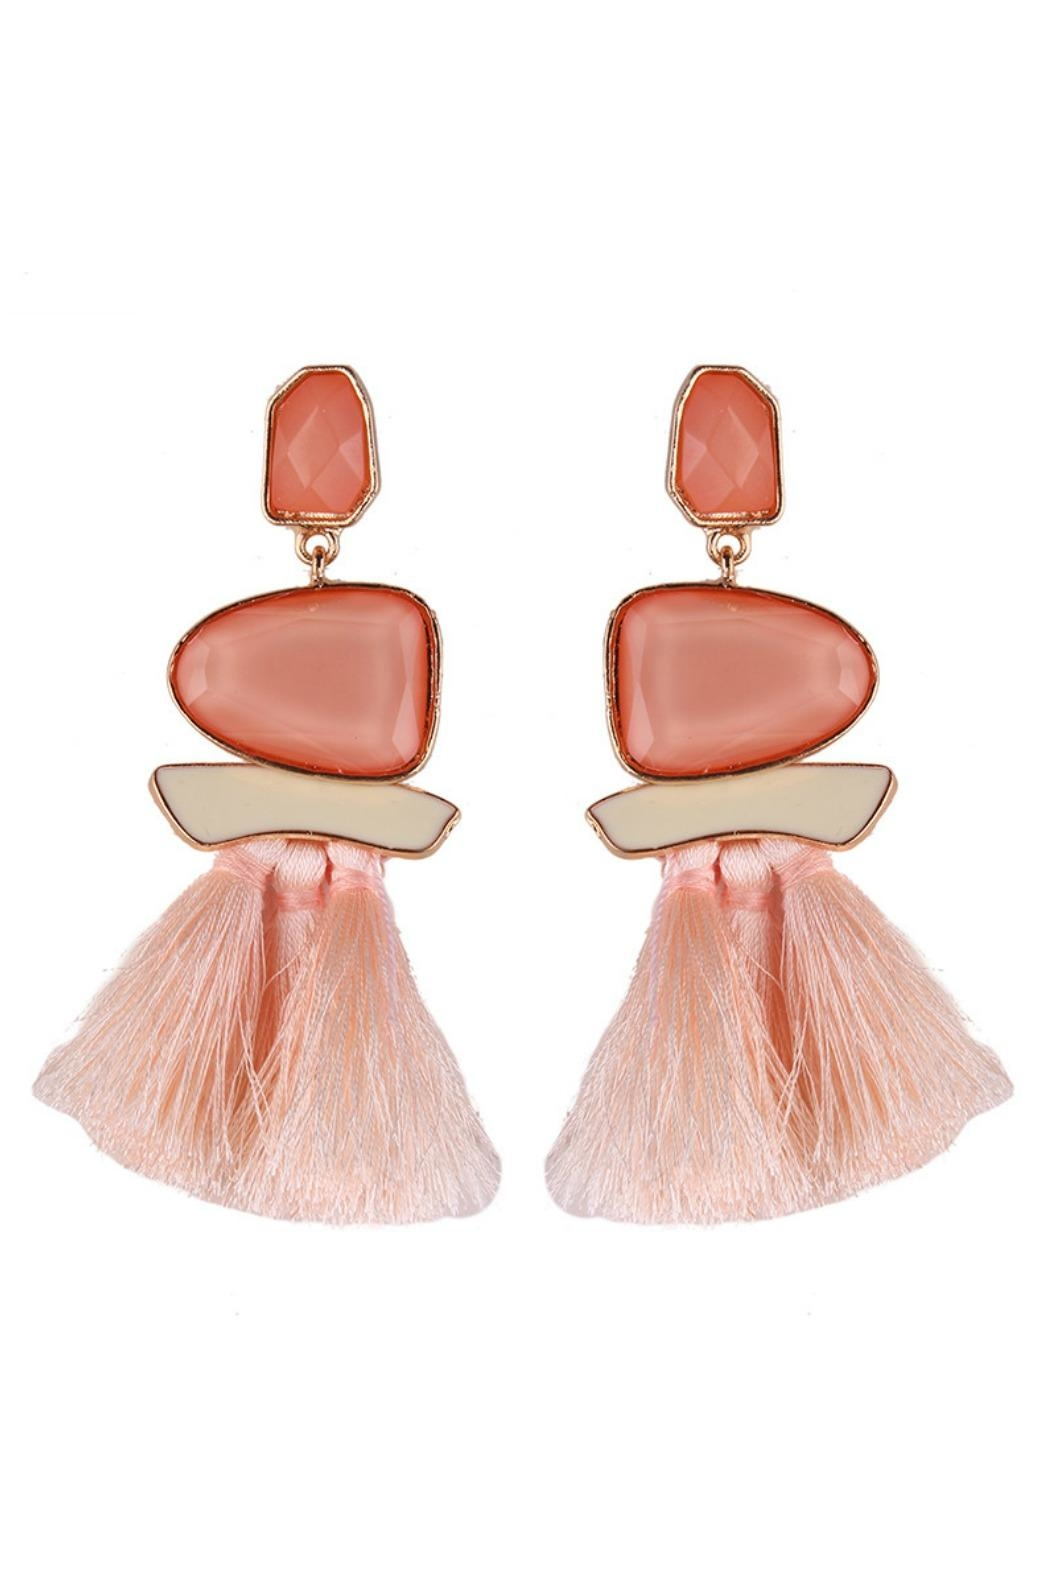 L'Imagine Pink Tassel Earrings - Front Cropped Image